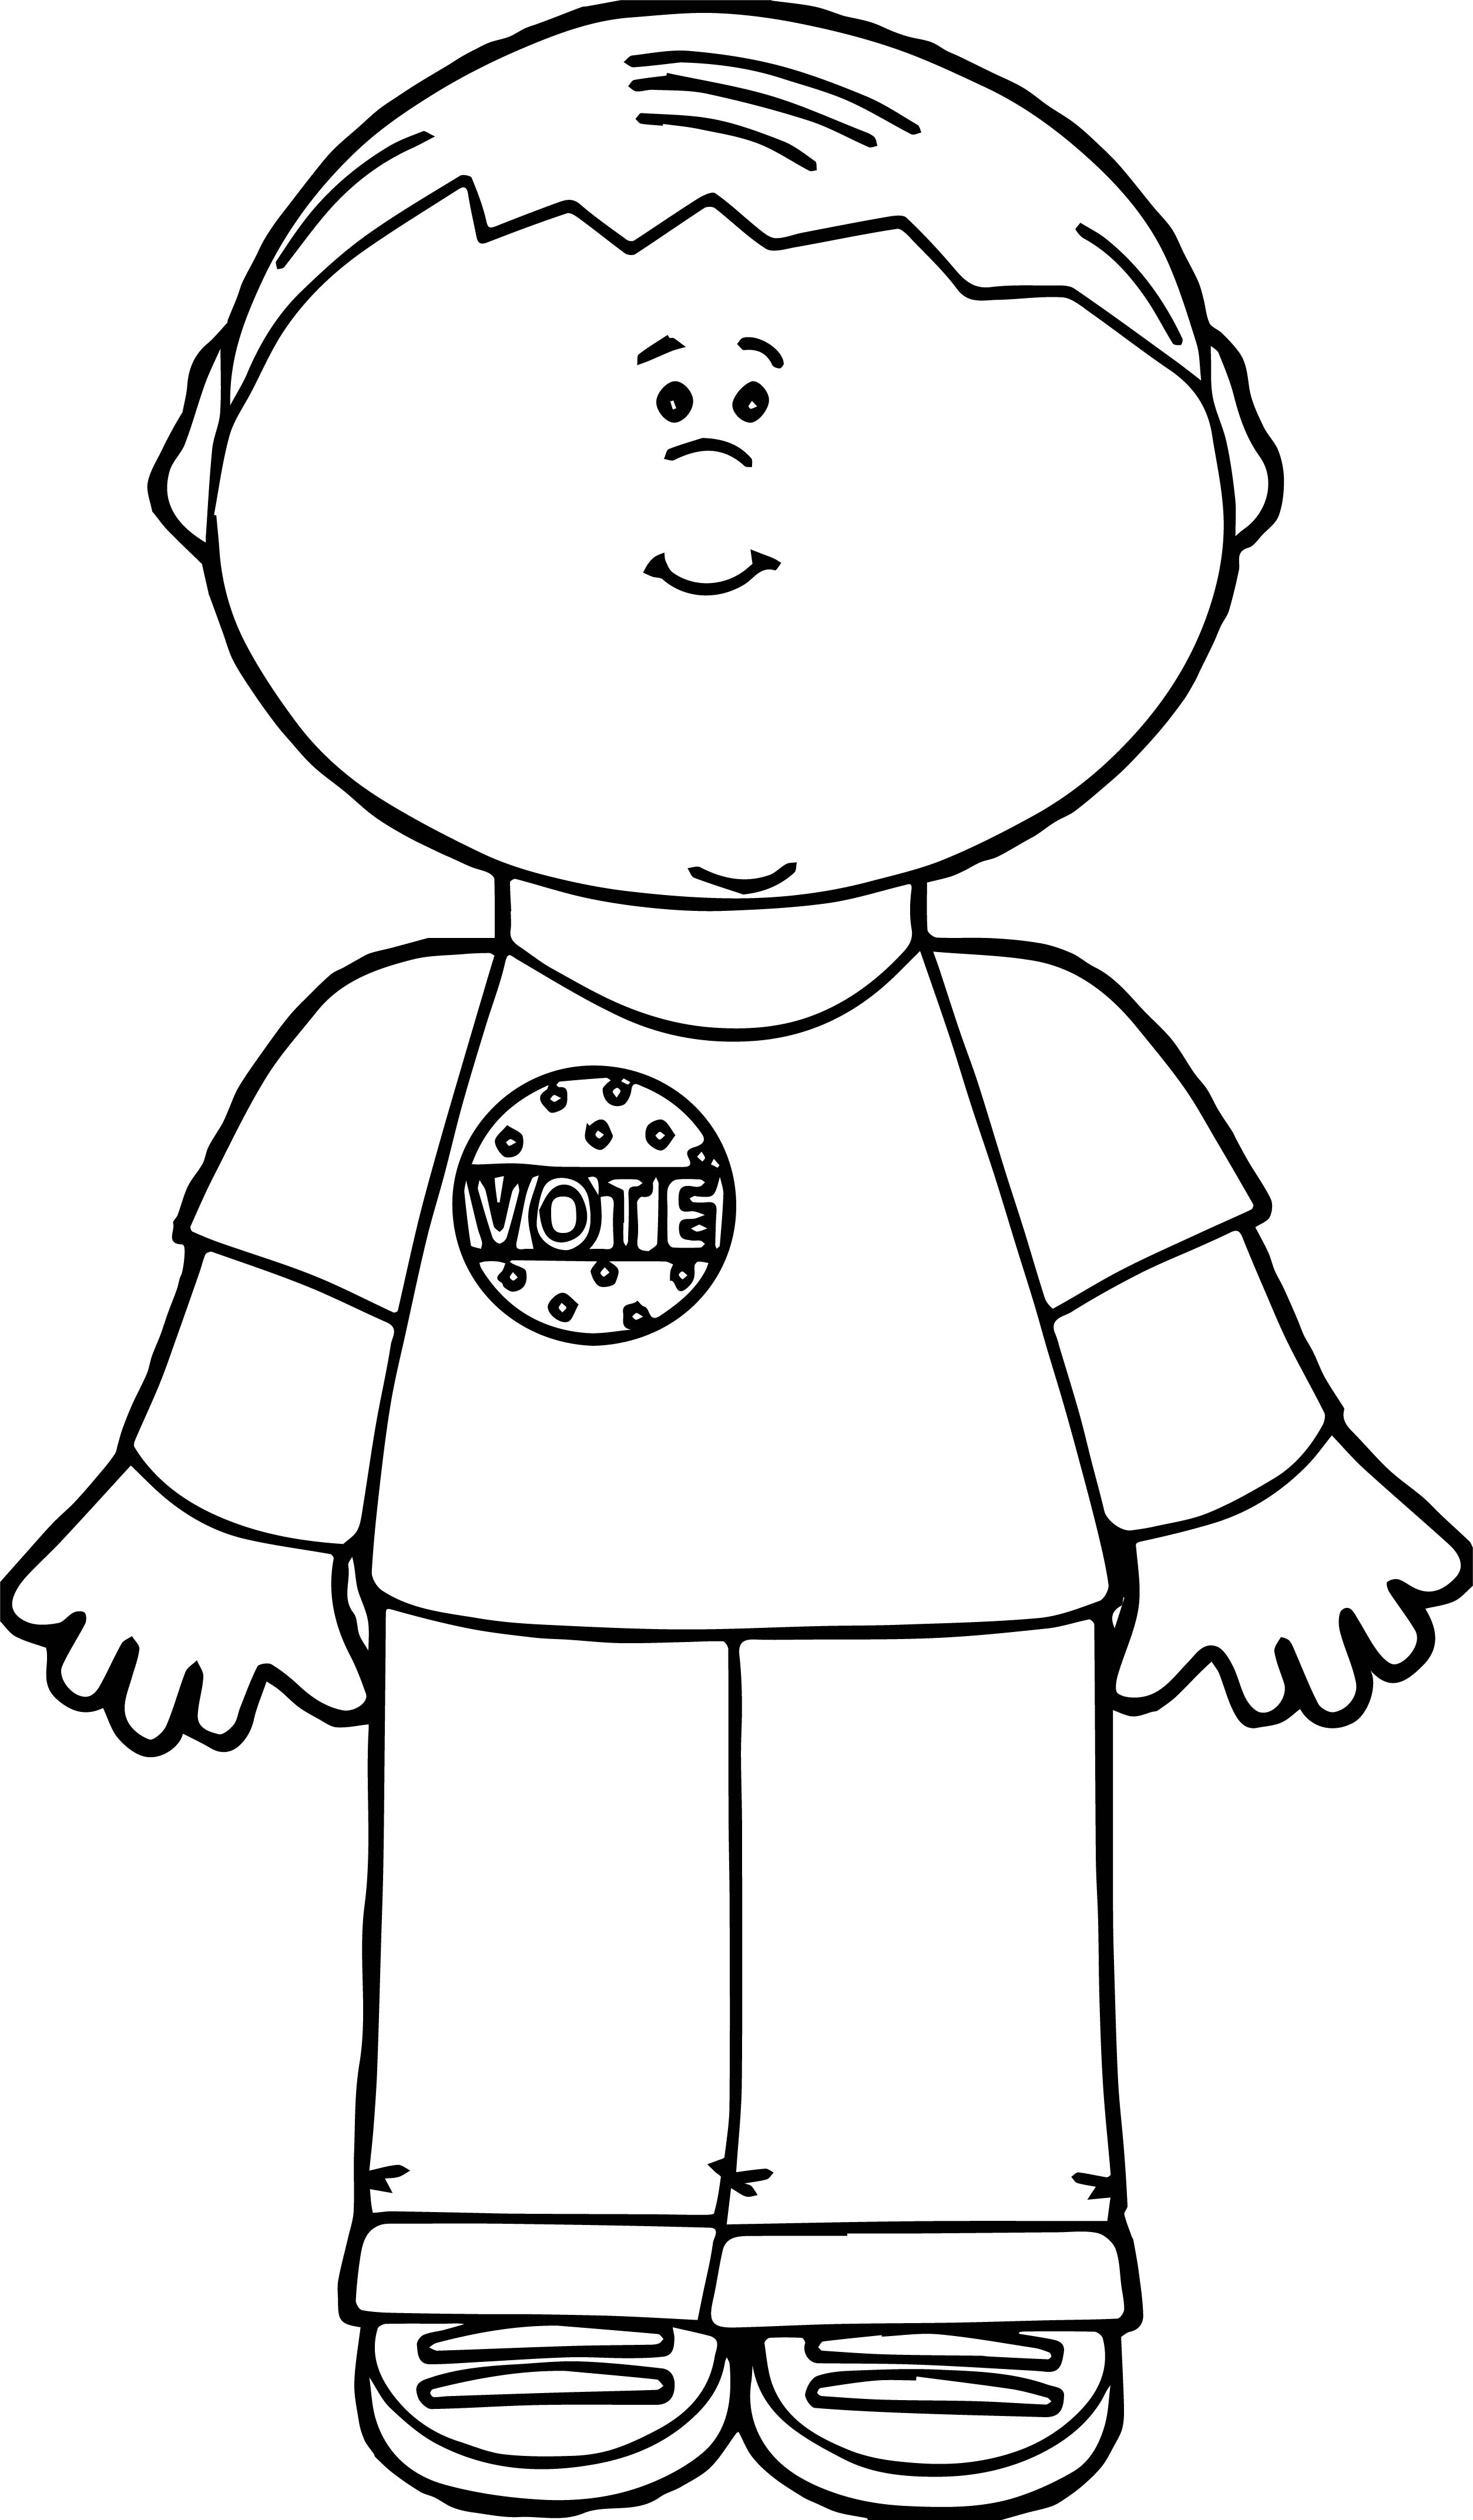 Vote Button Coloring Sheet Coloring Pages